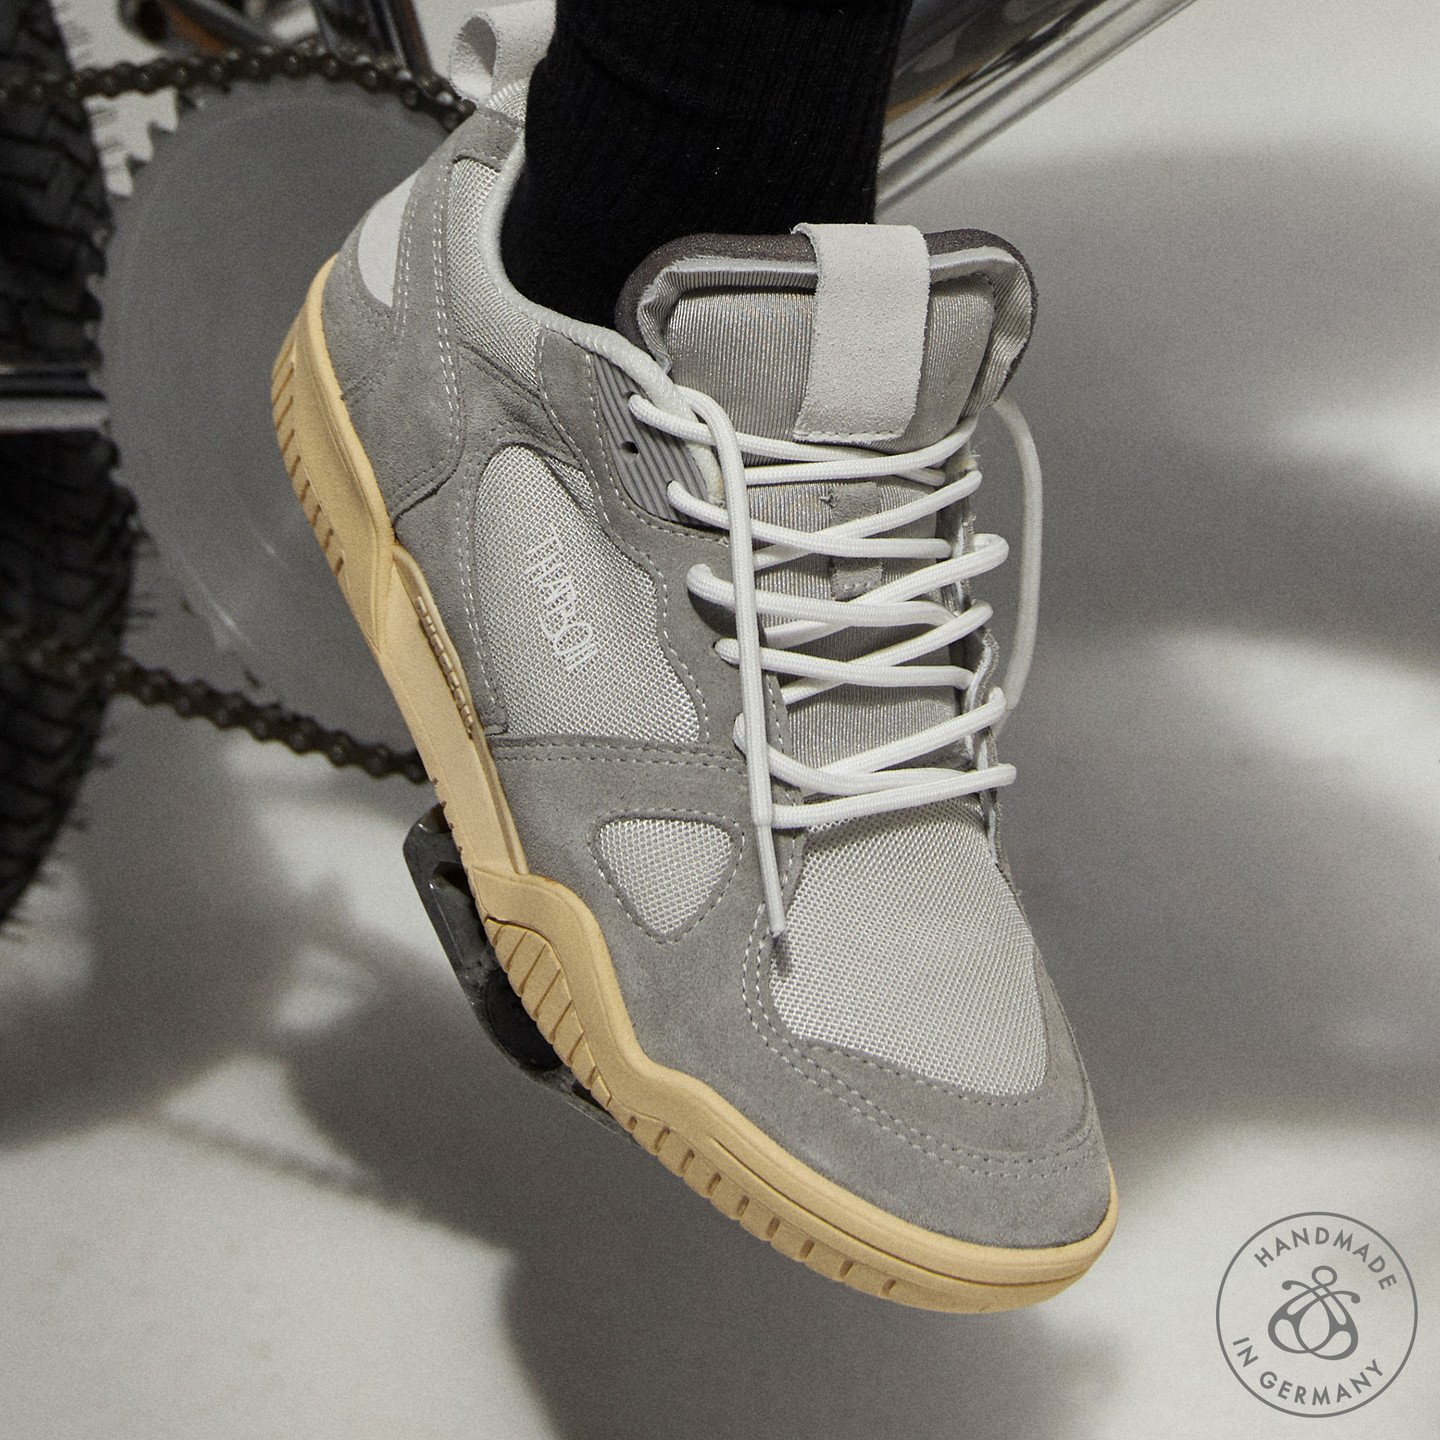 KangaROOS Ultralite Street 355C x THATBOII - Made in Germany Everyday Grey Ultralite-Street-355C-x-THATBOII